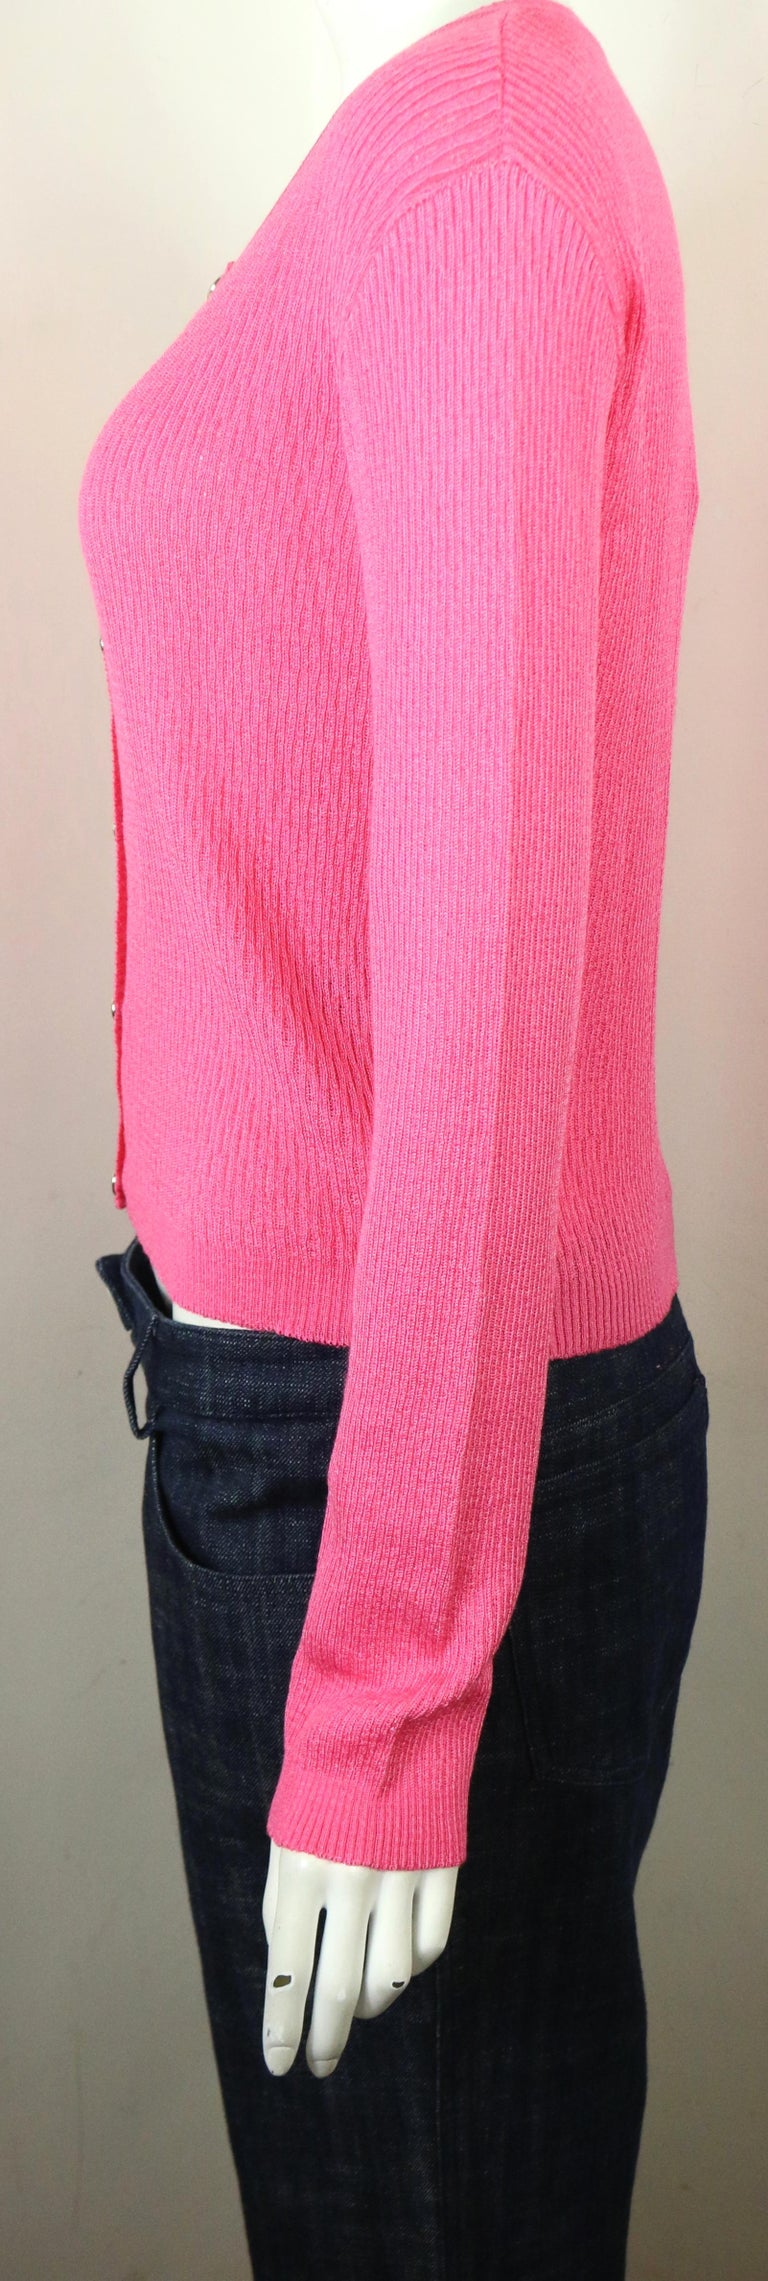 Gianni Versace Jeans Couture Pink Knitted Cardigan  For Sale 1